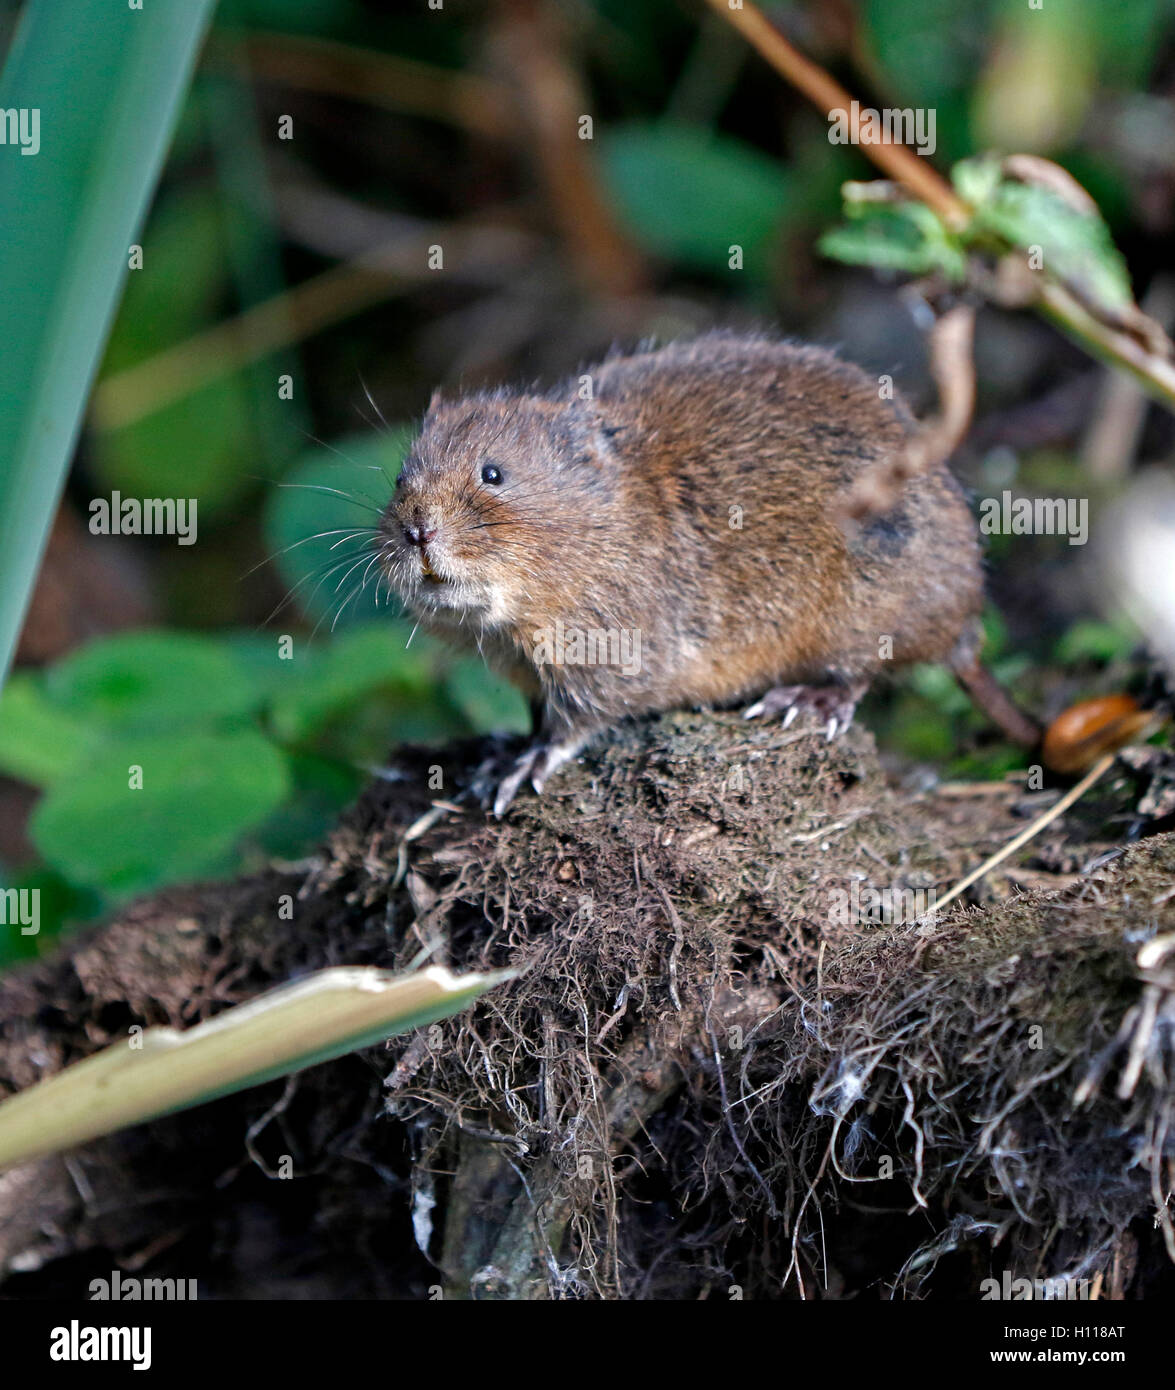 Water Vole (Arvicola amphibious), taken in the wild in Nottinghamshire, - Stock Image